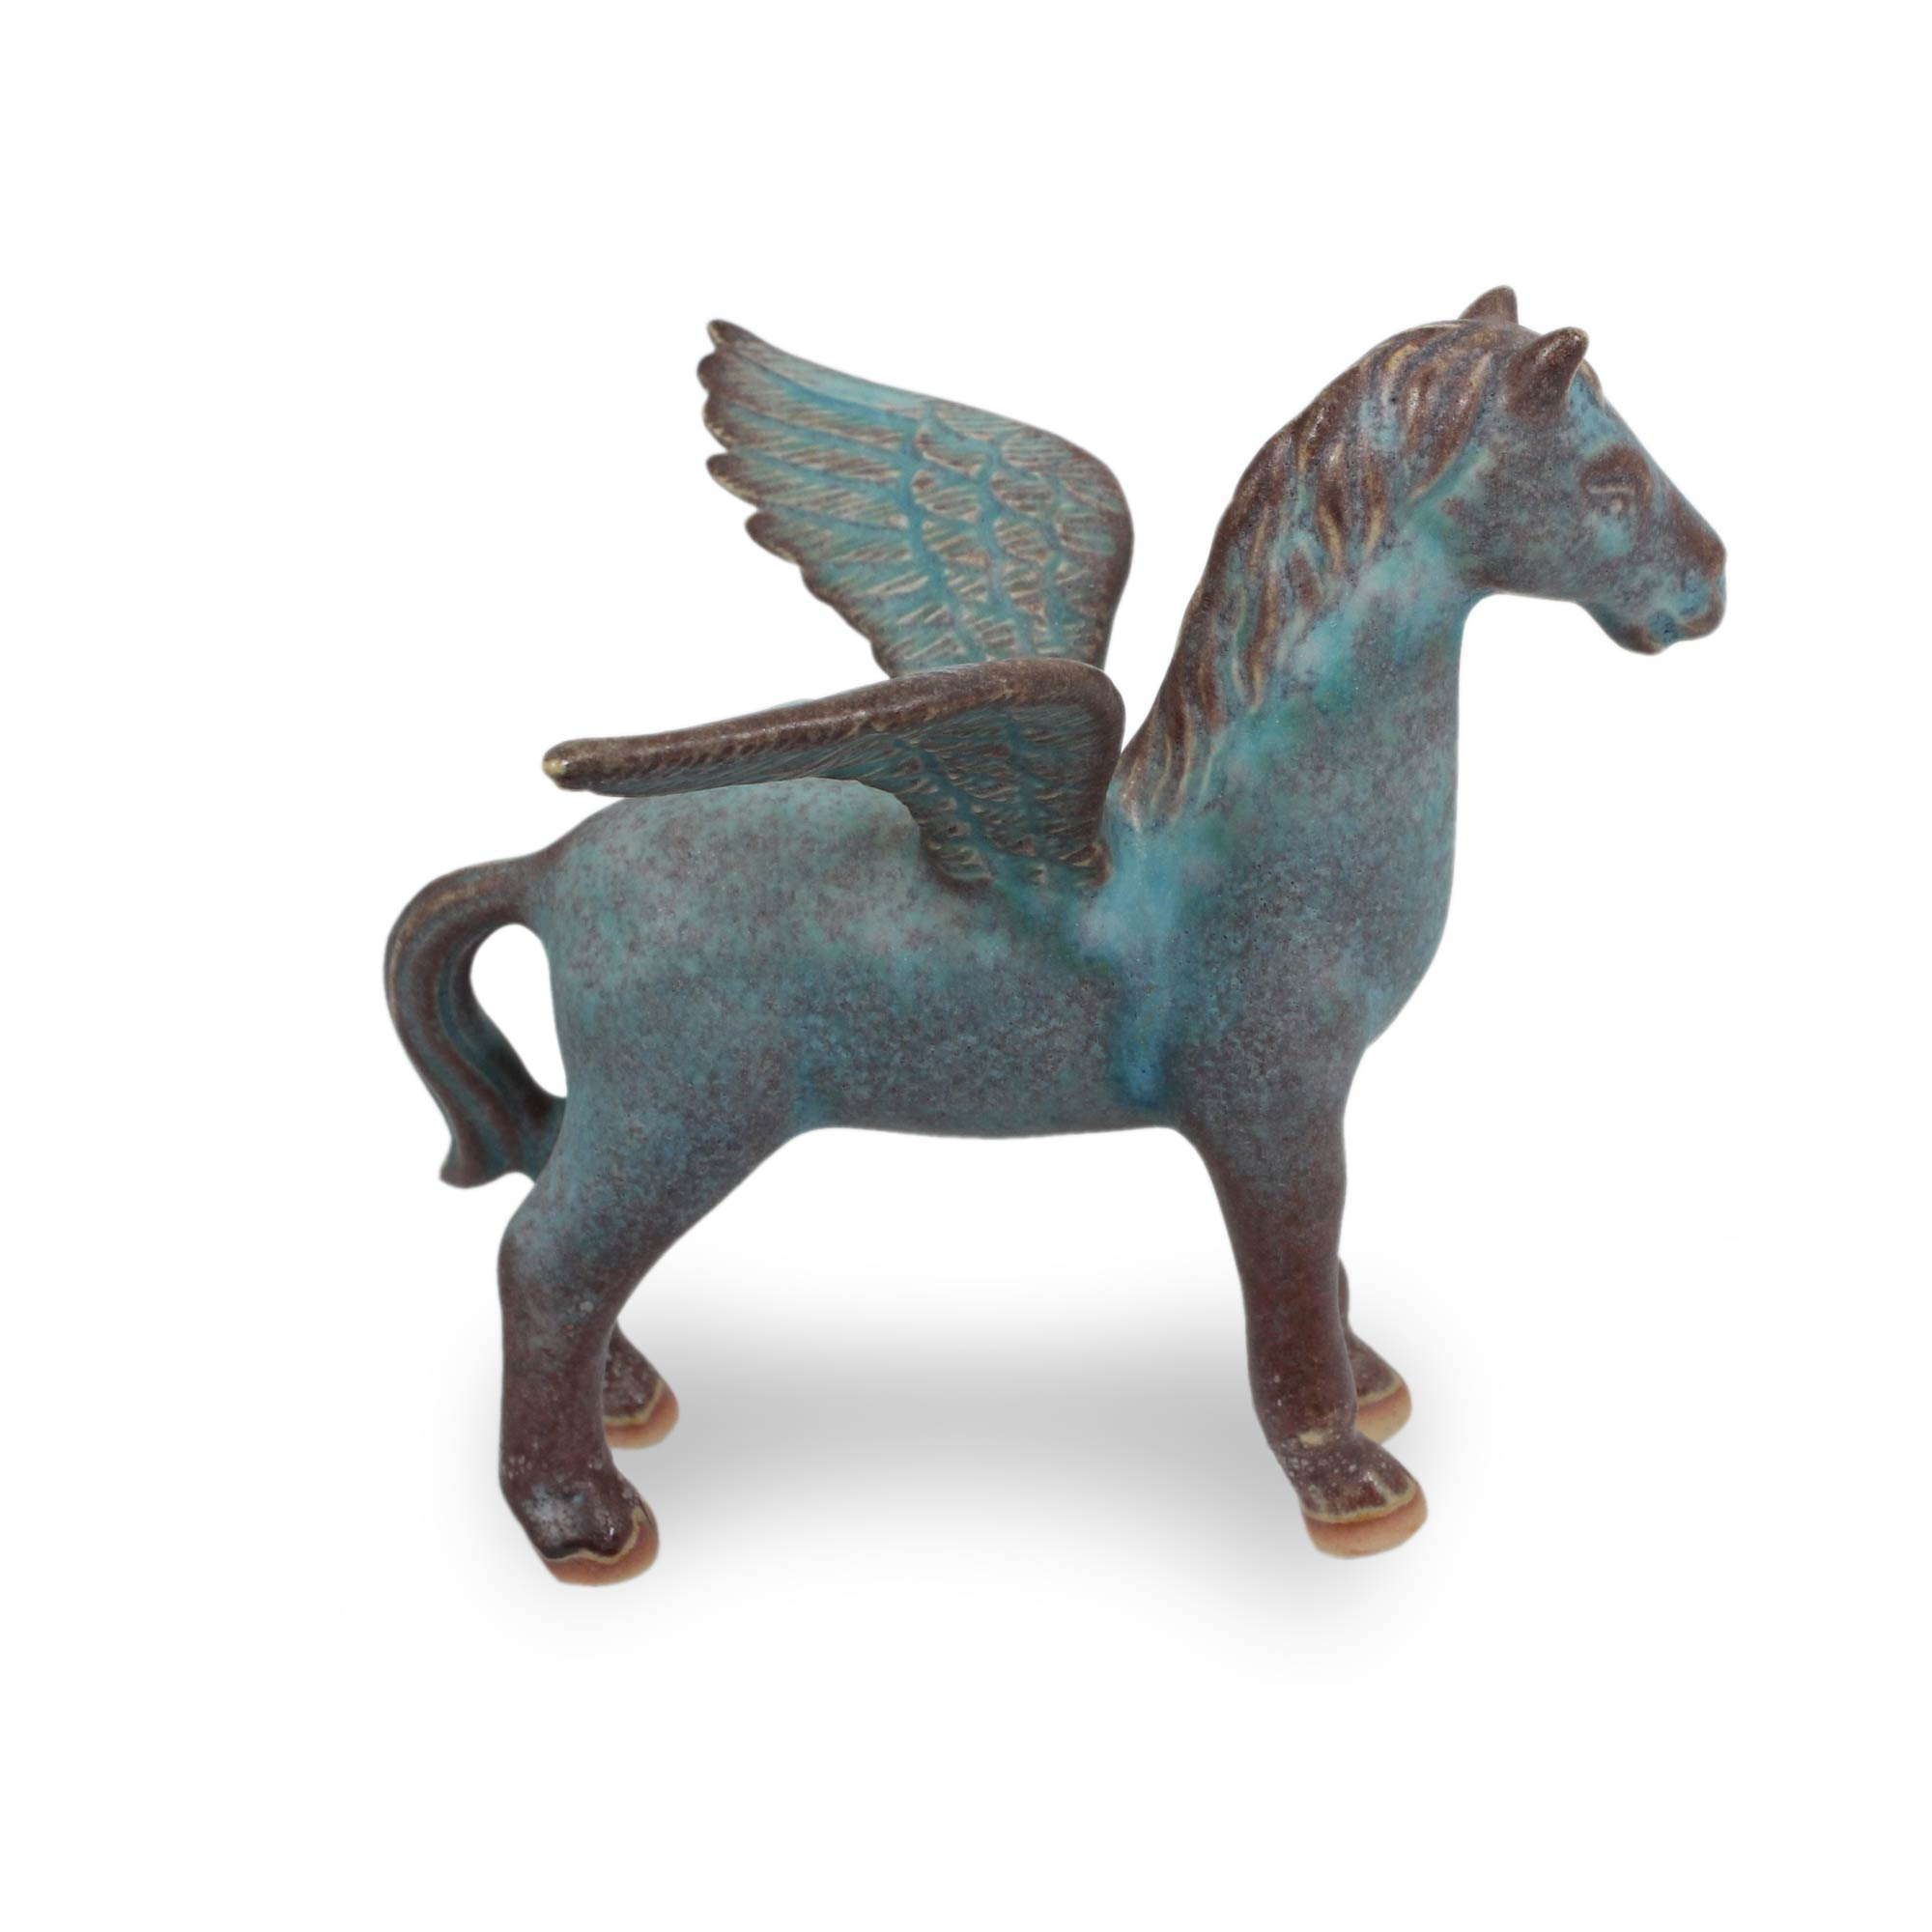 UNICEF Market | Handcrafted Celadon Winged Horse from Thailand - Pegasus